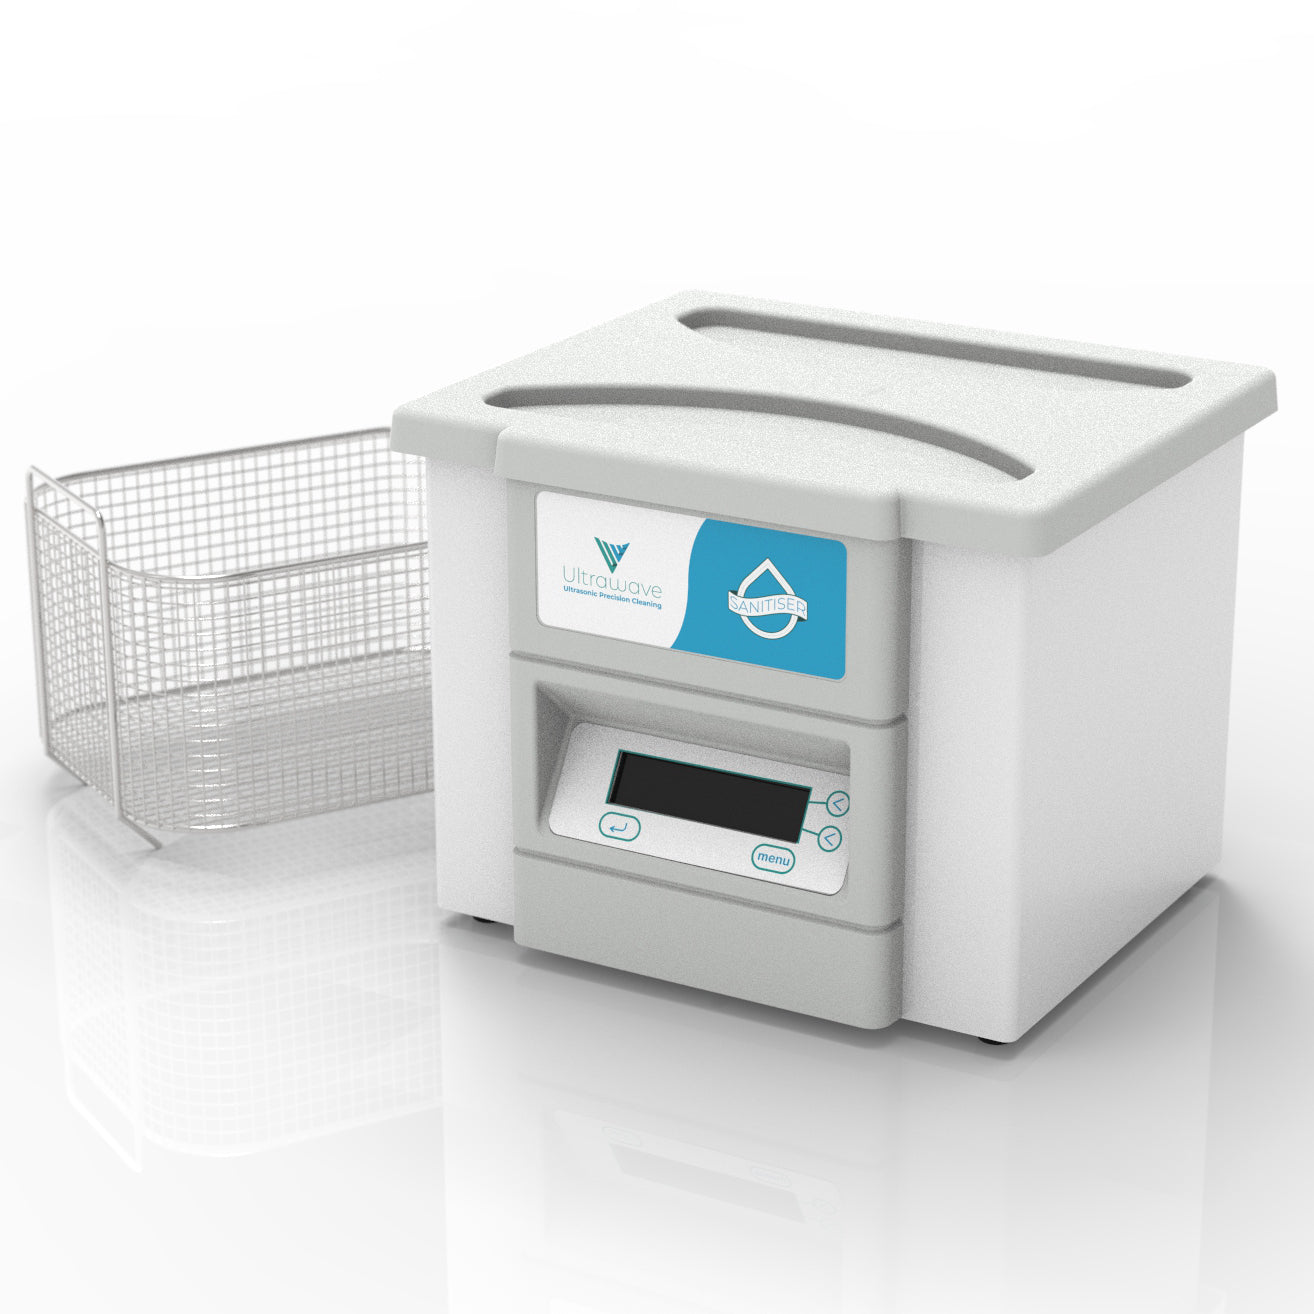 Sanitiser Ultrasonic Cleaning Bath 9L Product Image